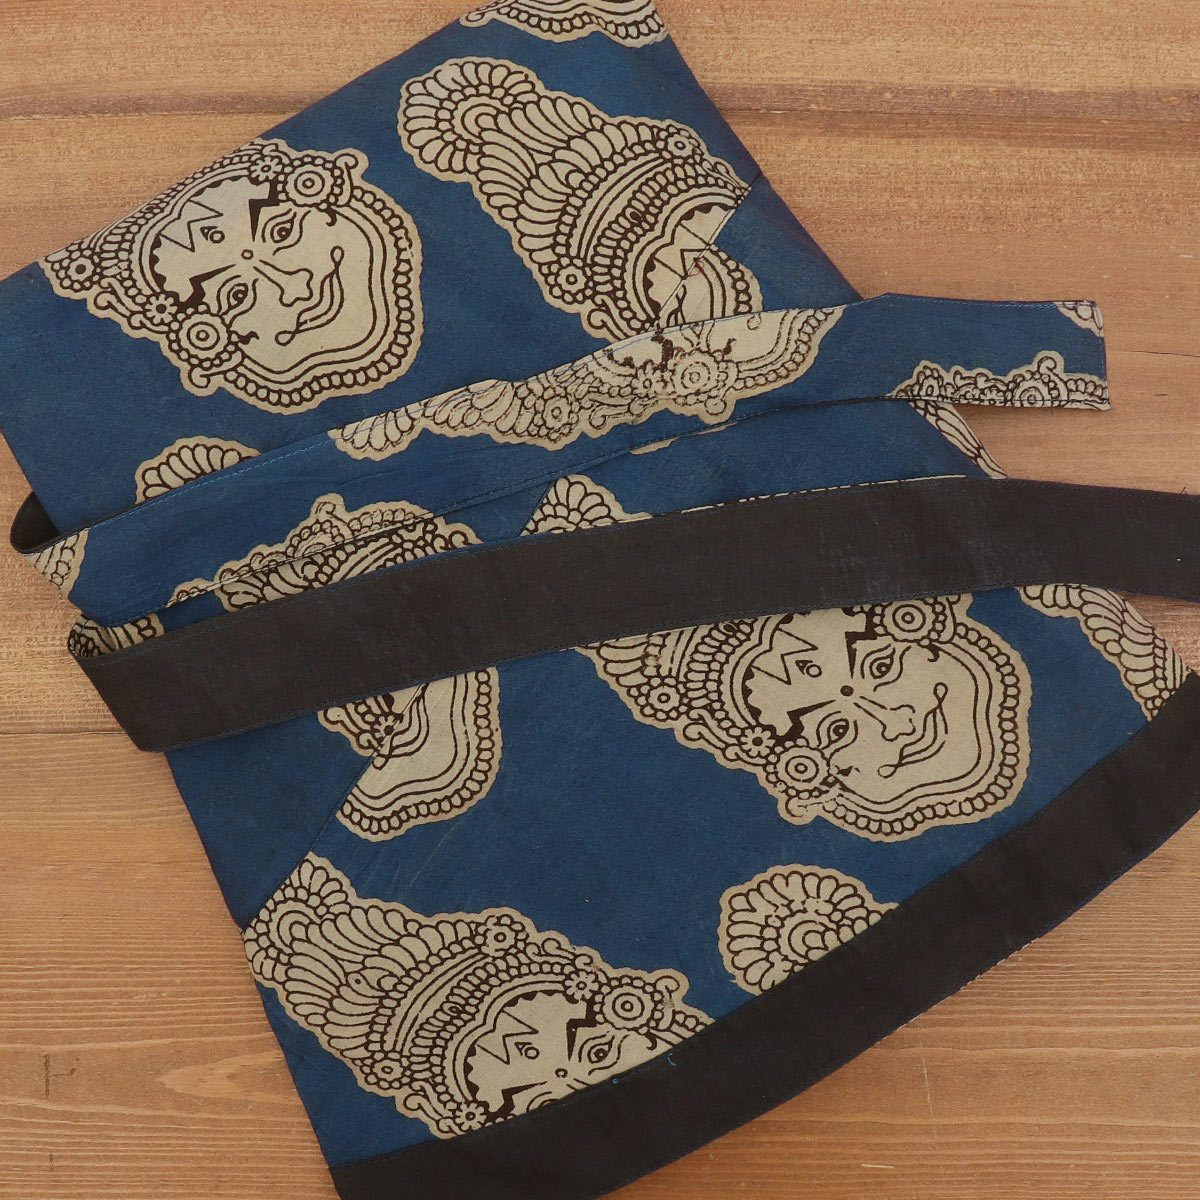 Kalamkari Blue and Black wrap around skirt